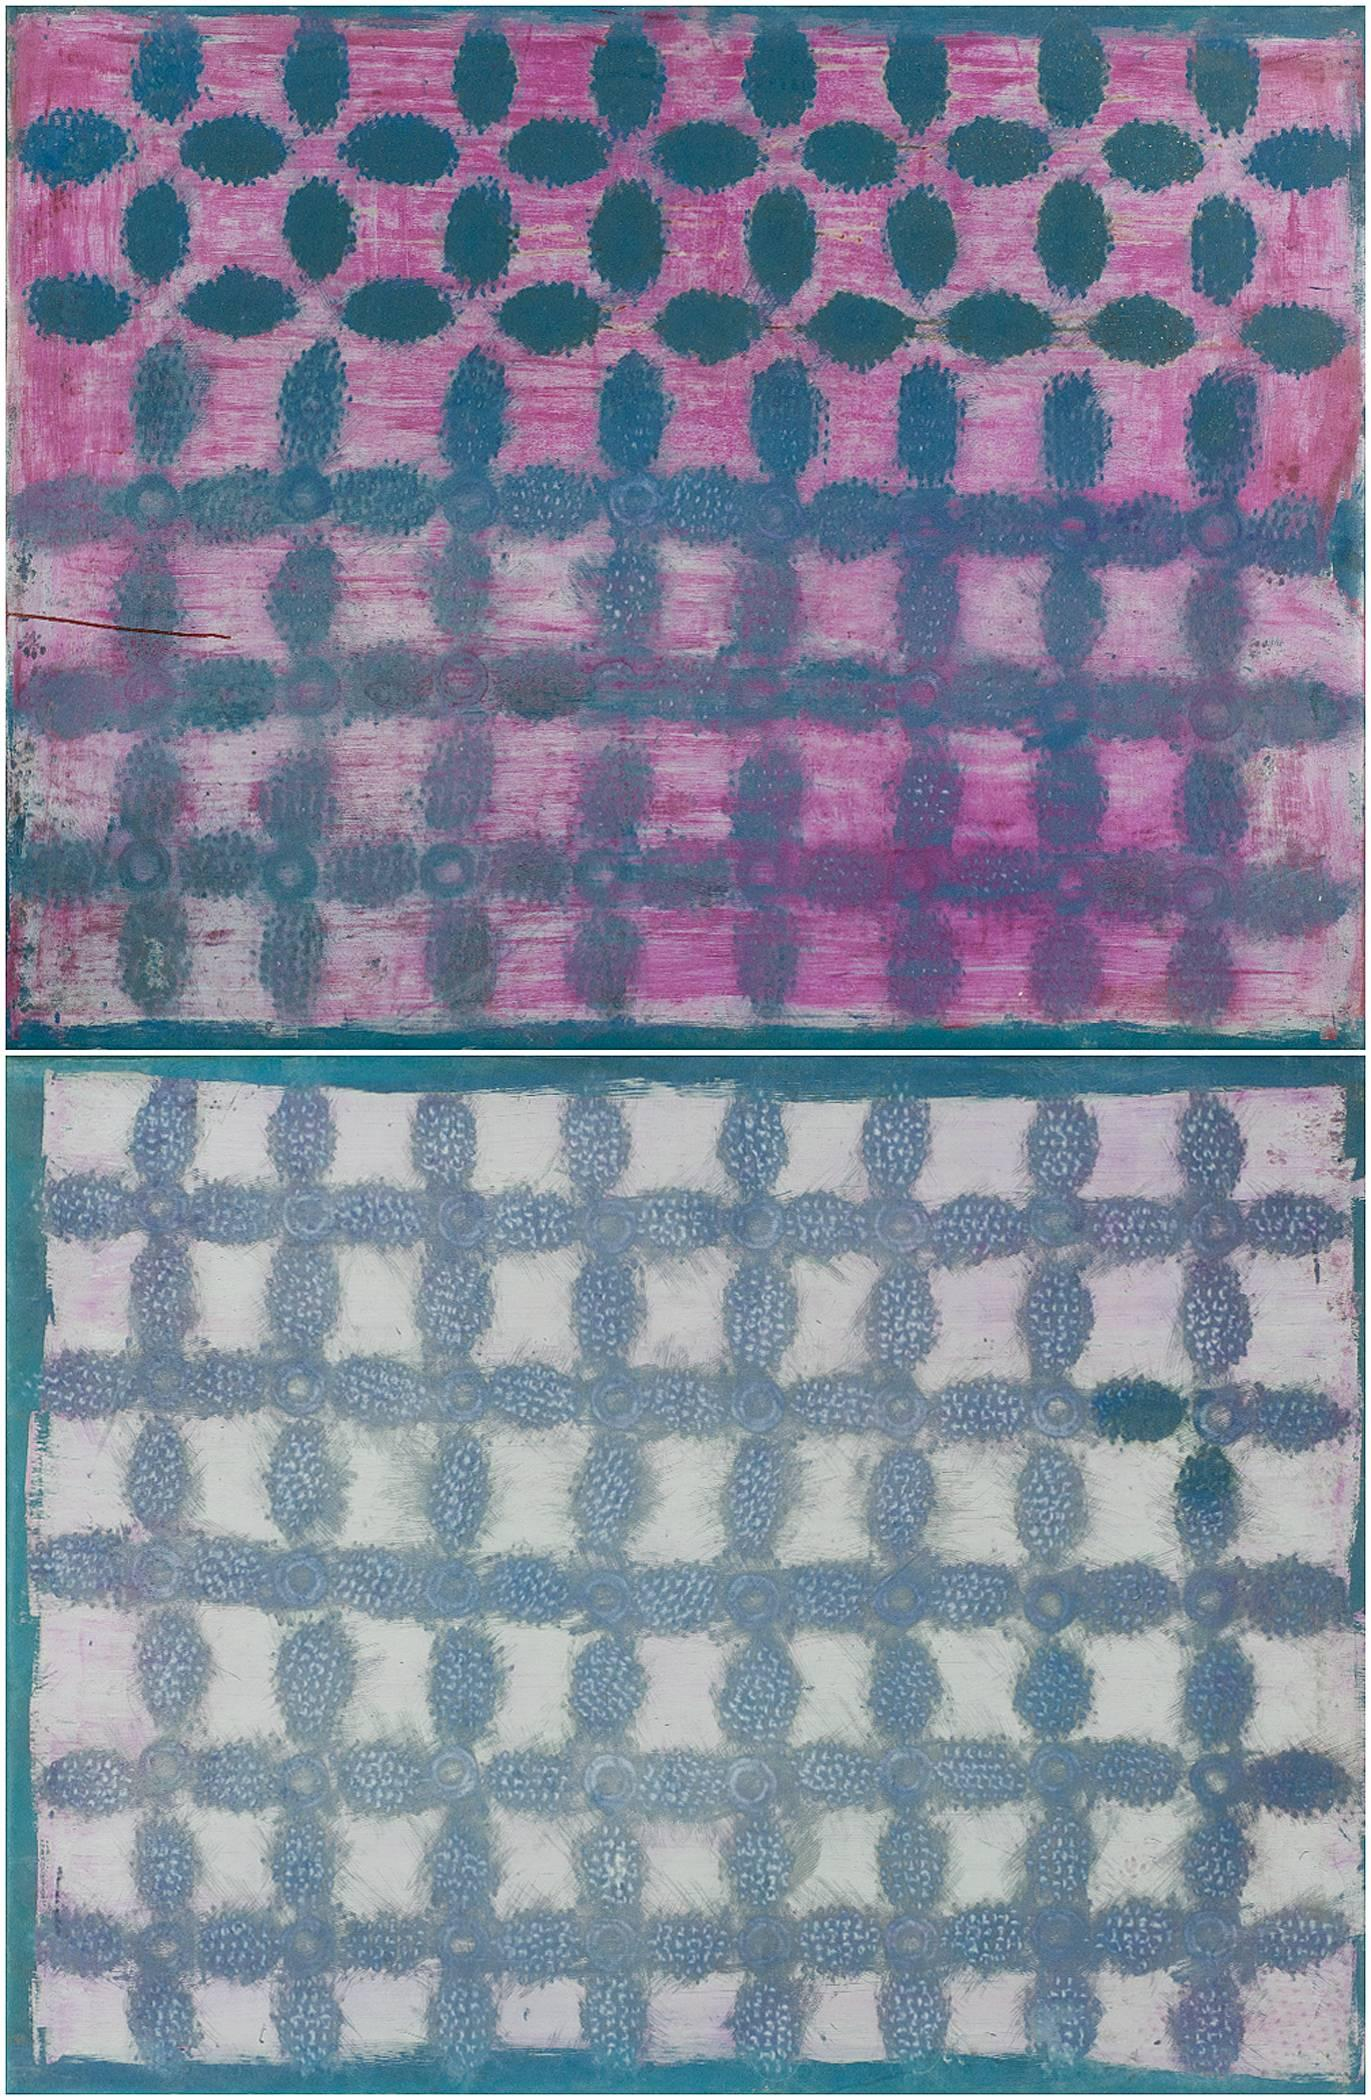 Double Panel Monumental Pink and Purple Dyed and Painted Stretched Rubber Canvas